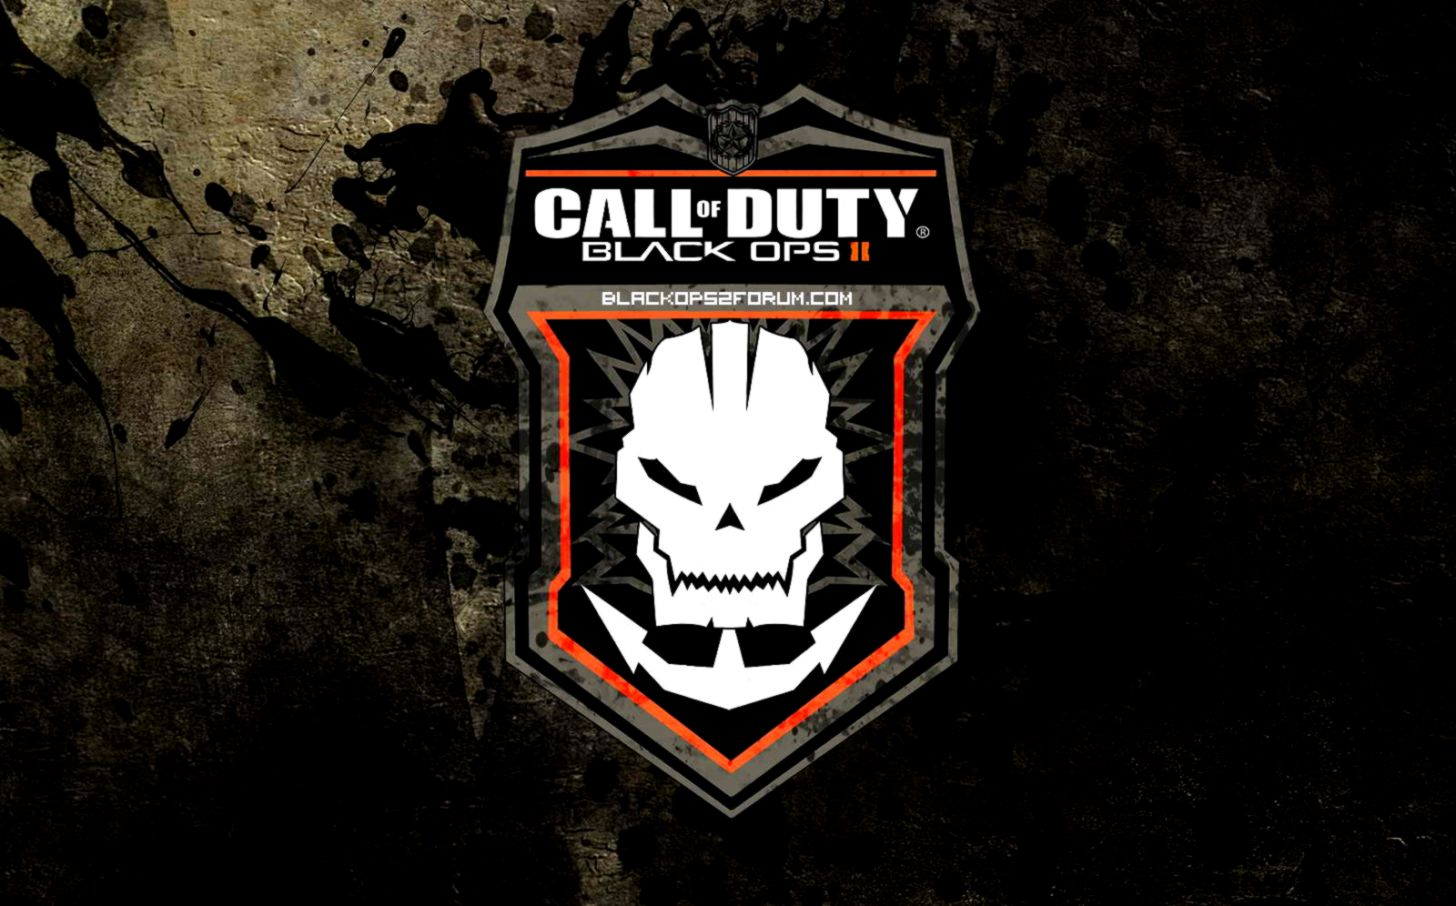 Call Of Duty Black Ops 2 Dark Logo Wallpapers.